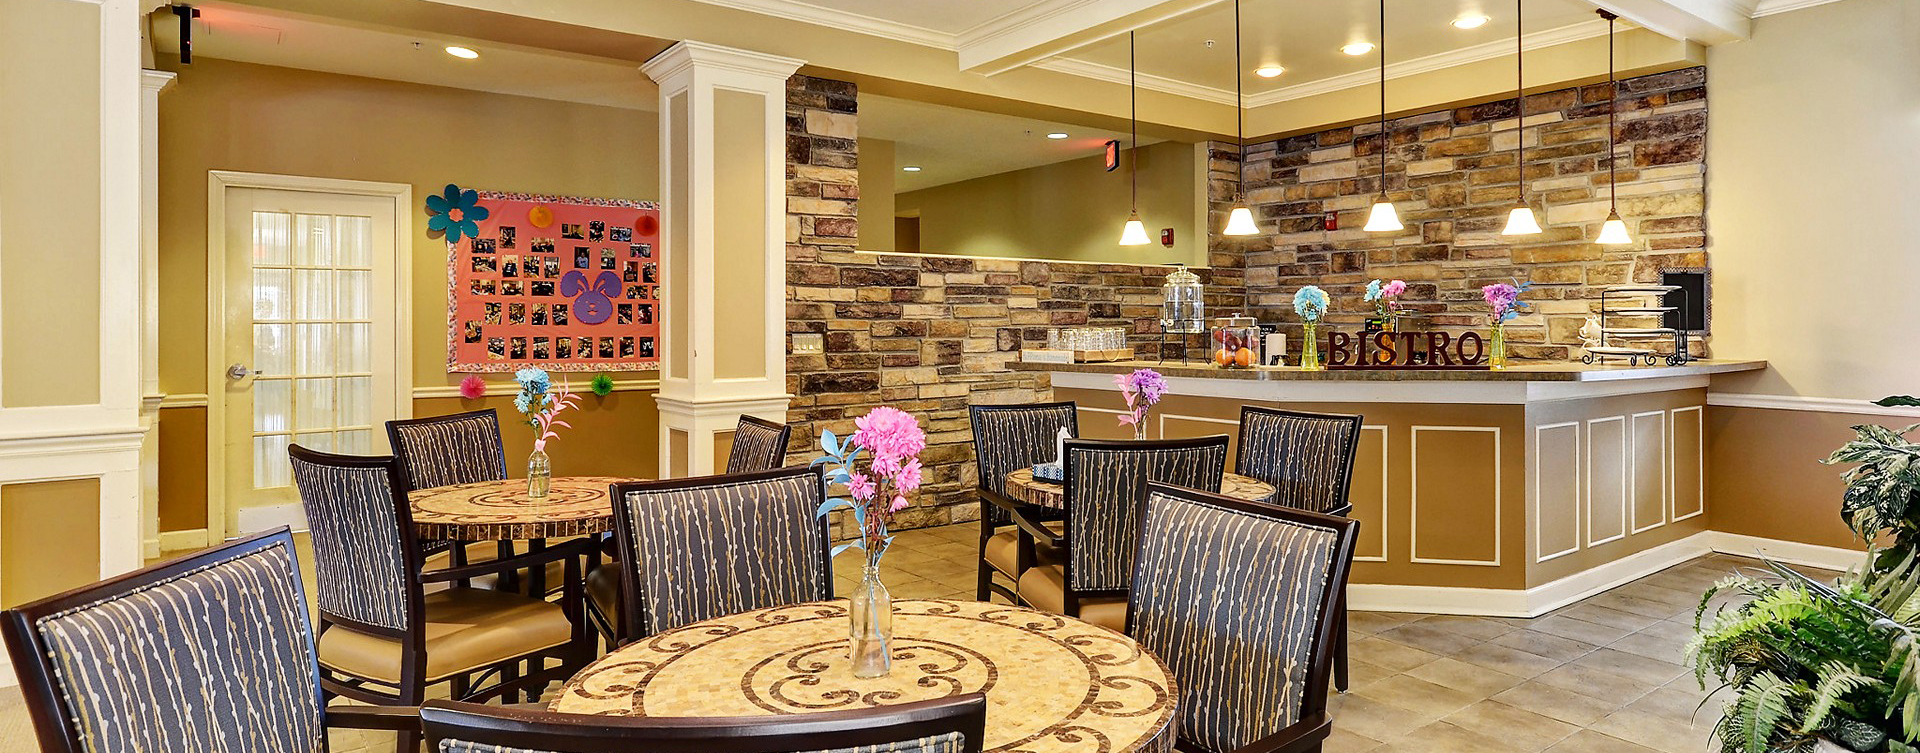 We're serving up snacks, beverages and service around the clock in the bistro at Bickford of Crystal Lake